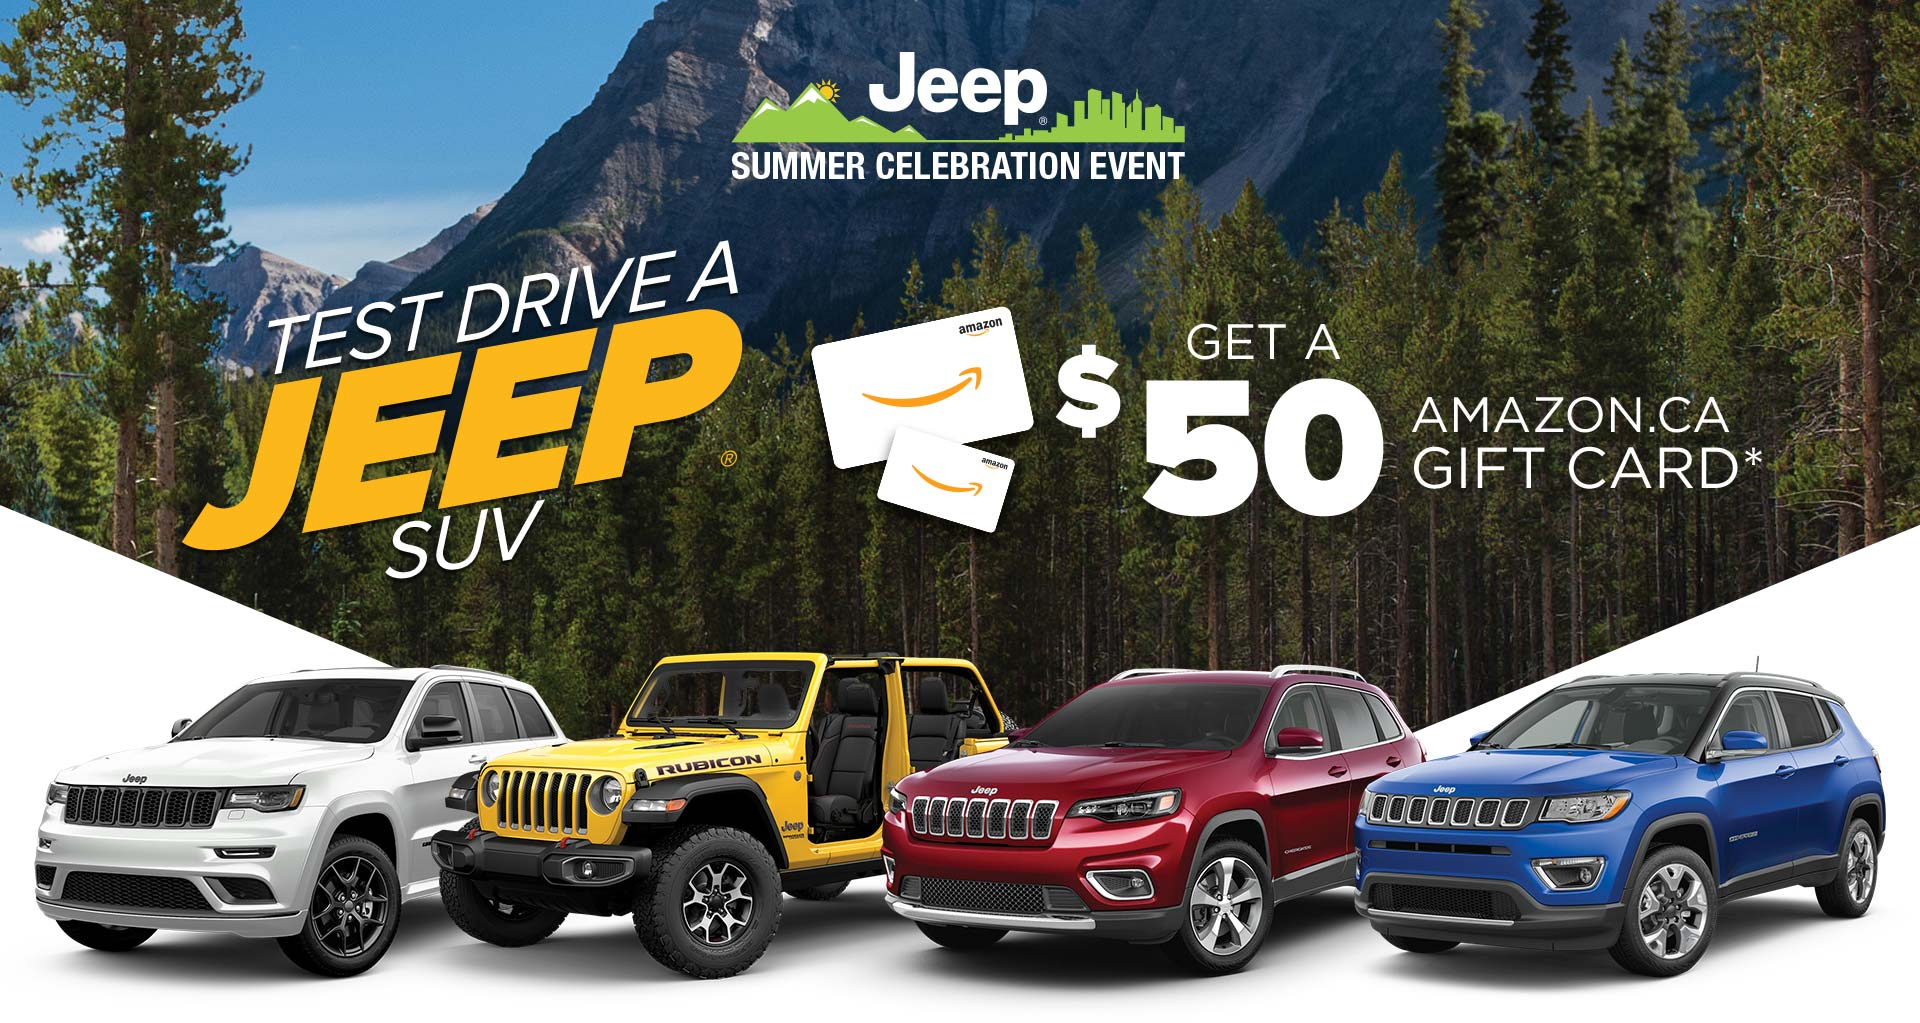 Jim Thompson Chrysler Dodge Jeep Ram Kingston | New Chrysler, Jeep, Dodge,  Ram, FIAT Dealership In Kingston, ON K7M7E6